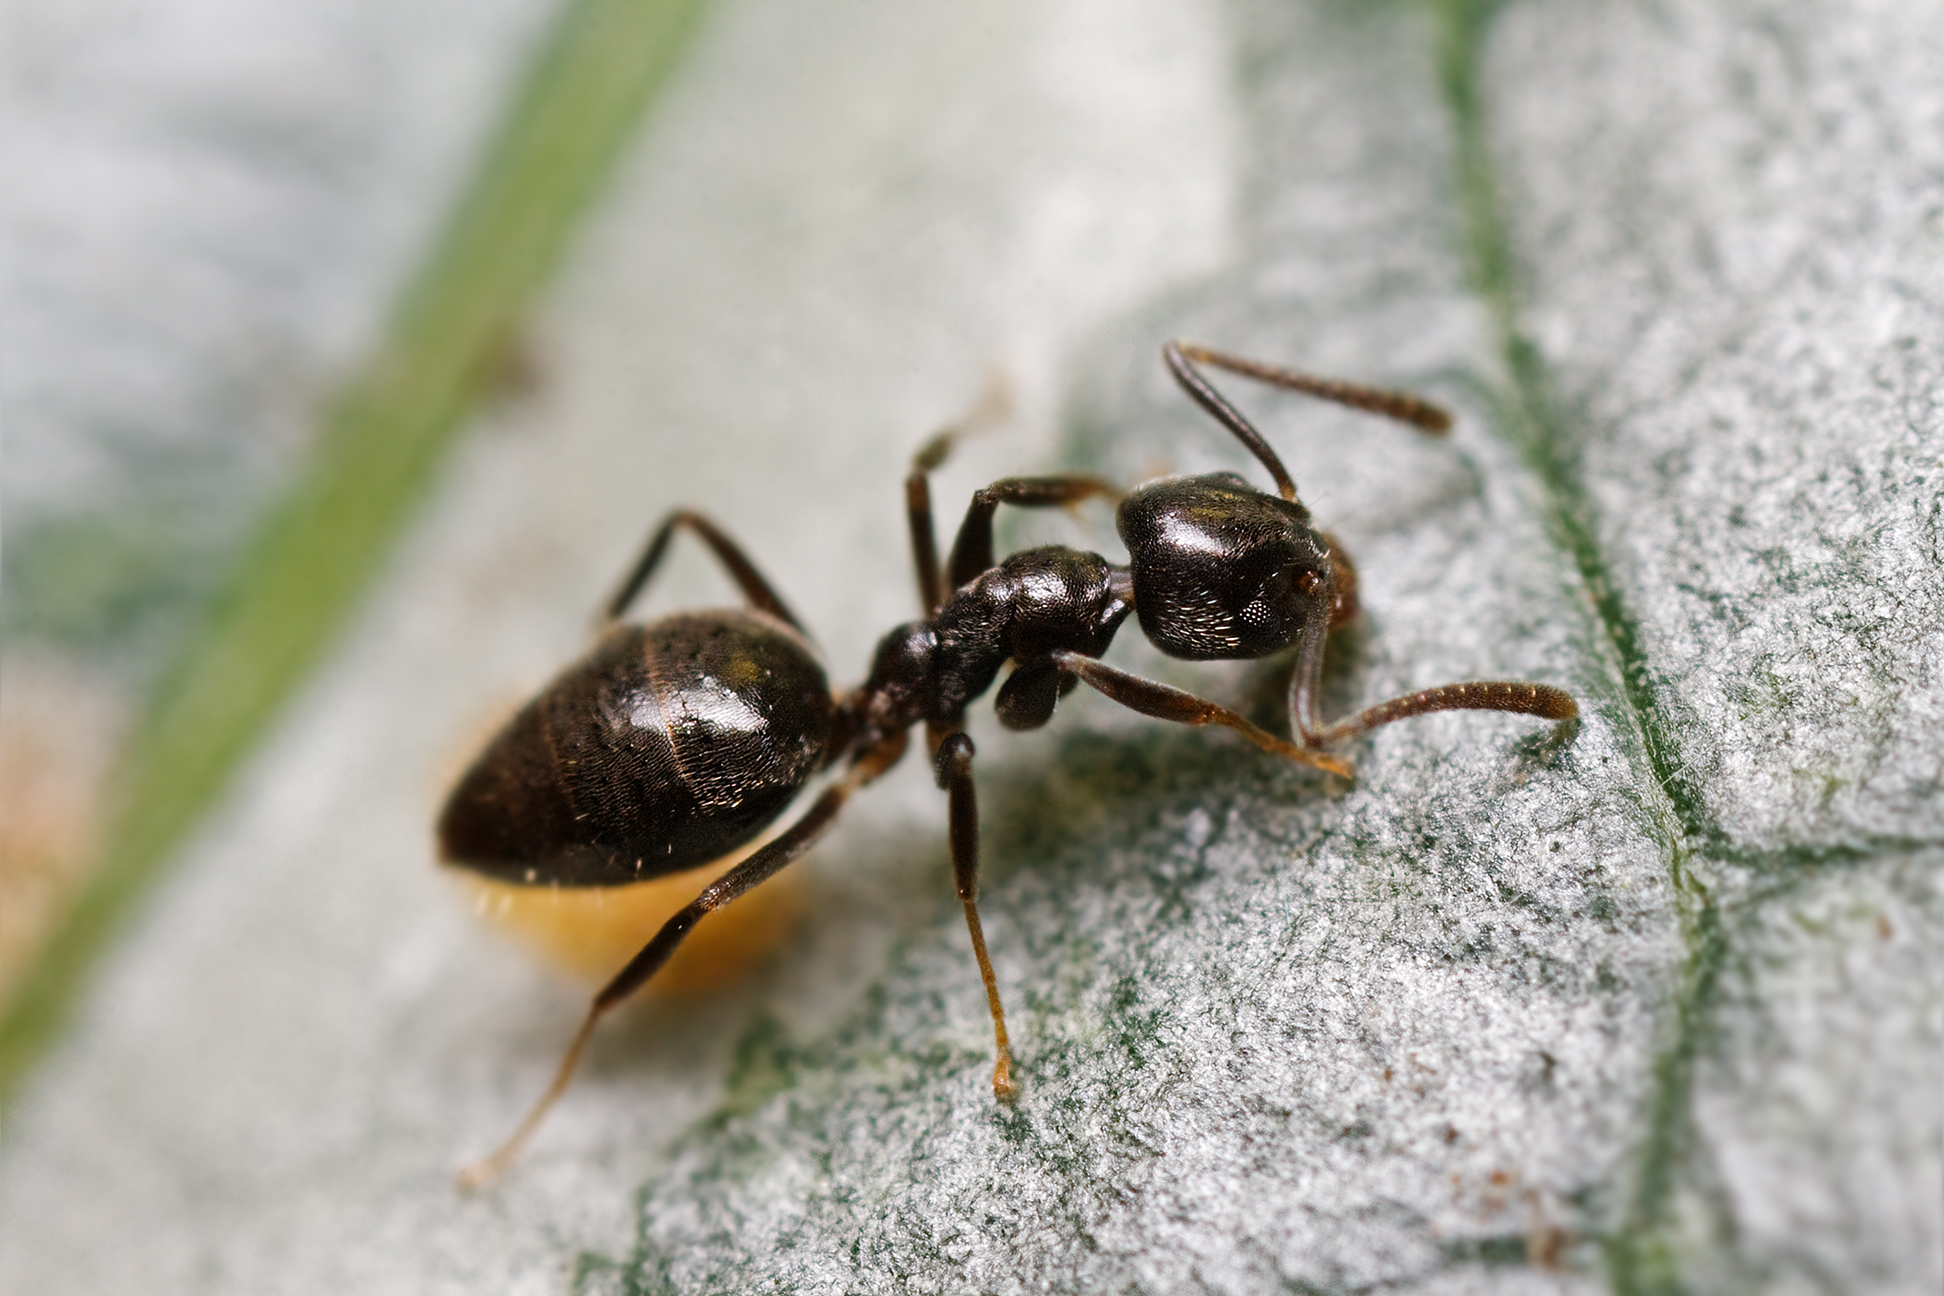 odorous house ant. Arizona Ant Species  Learn the Types of Ants in Arizona